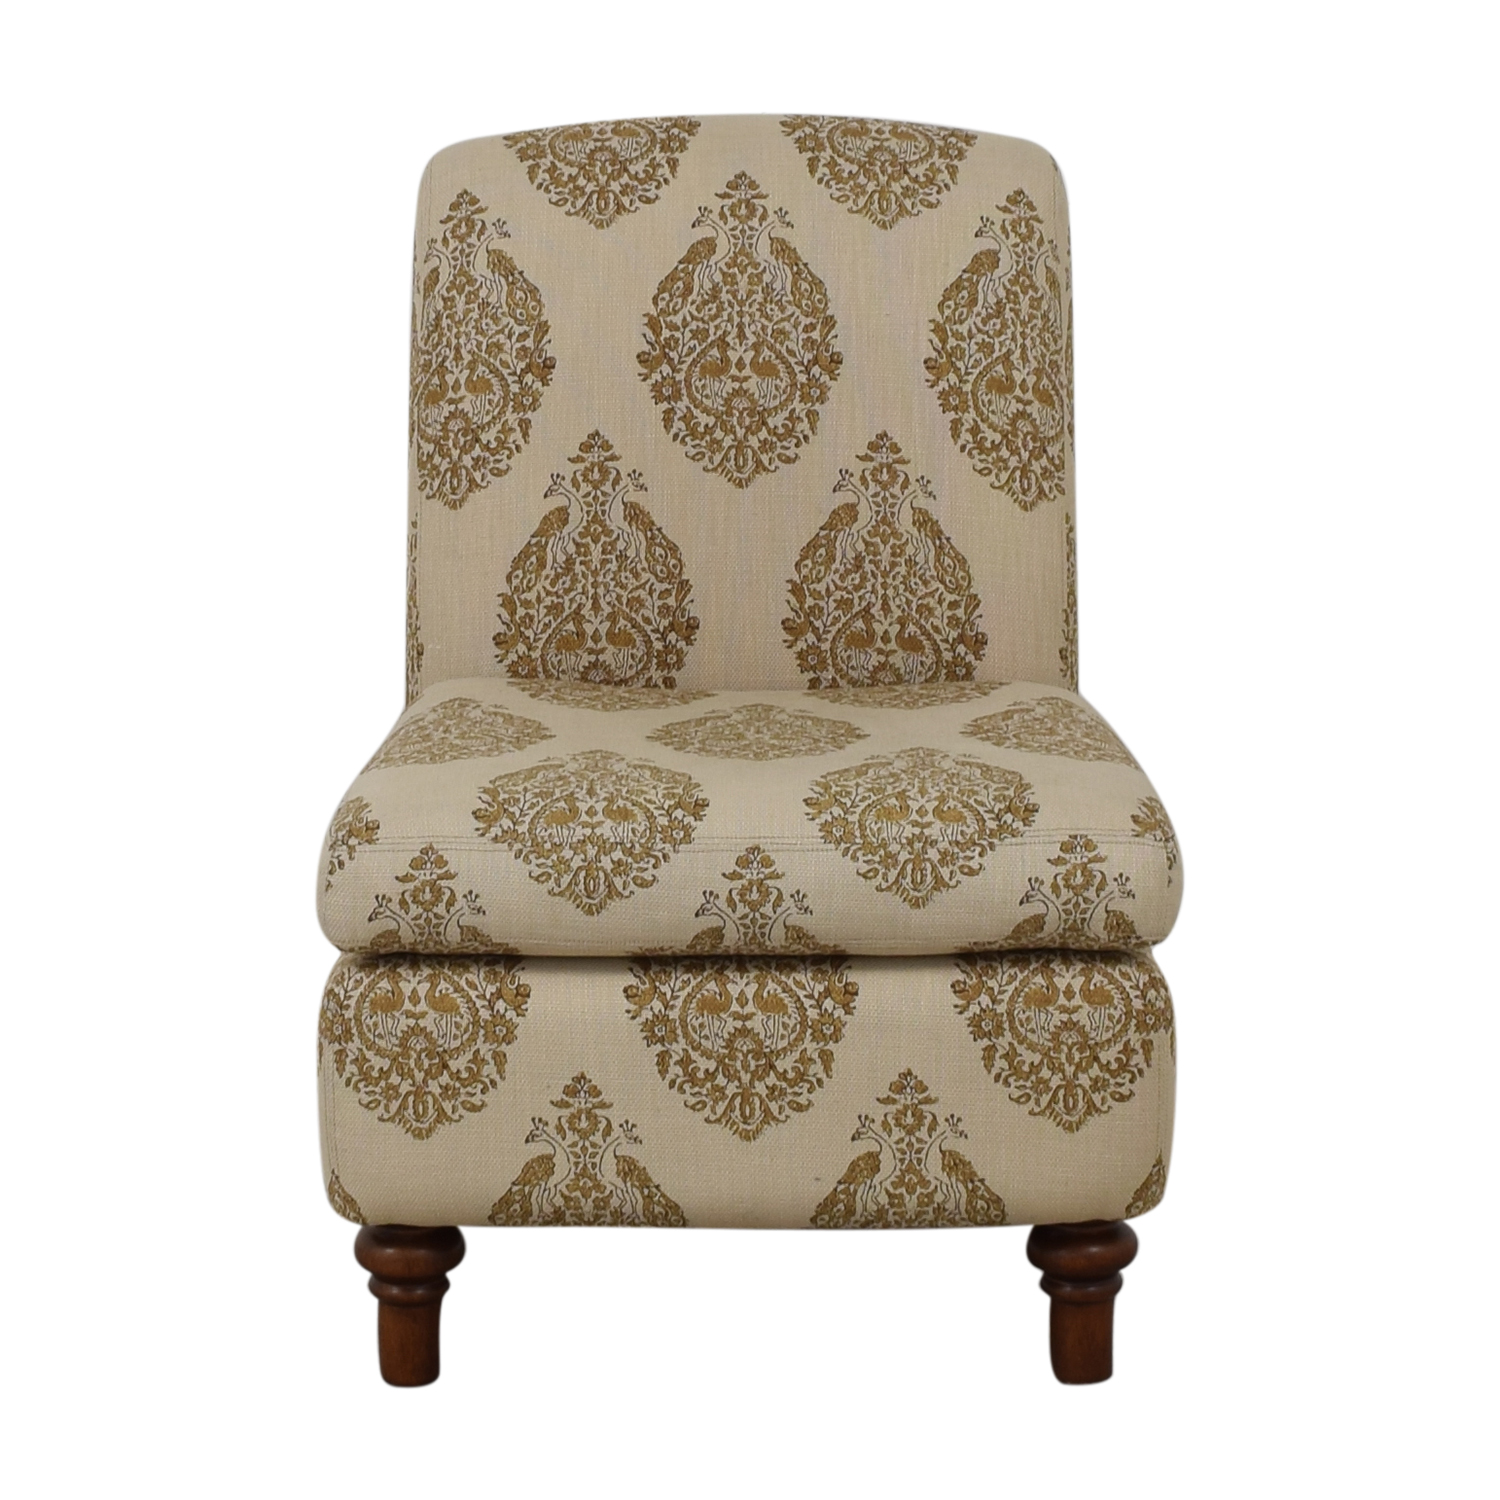 buy Pottery Barn Pottery Barn Beige Upholstered Chair online